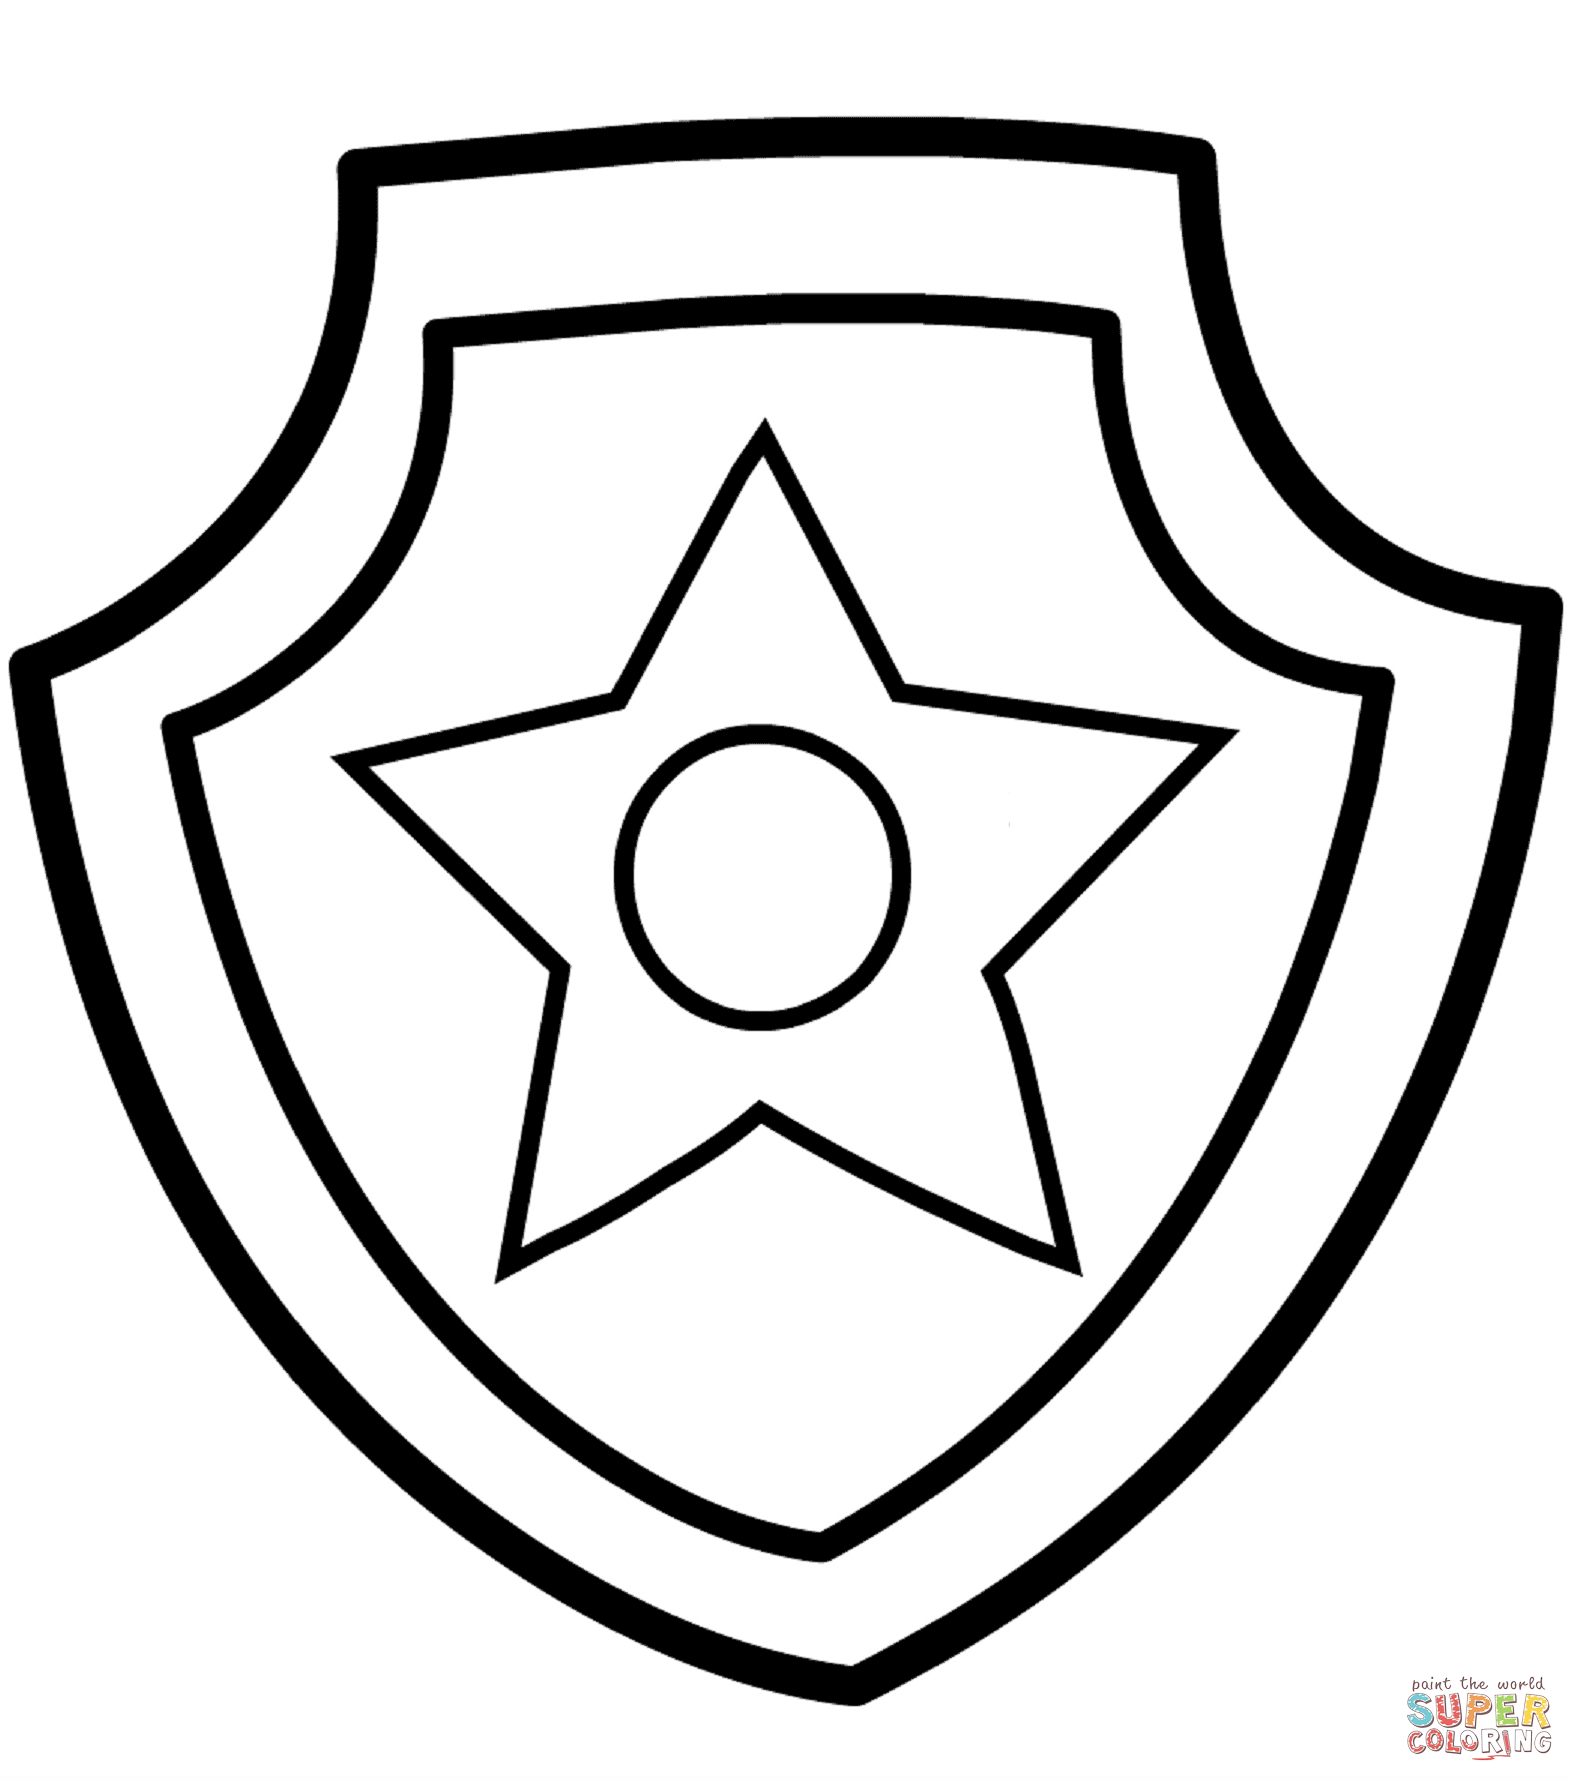 Paw Patrol Chase Badge Coloring Page Free Printable Coloring Pages